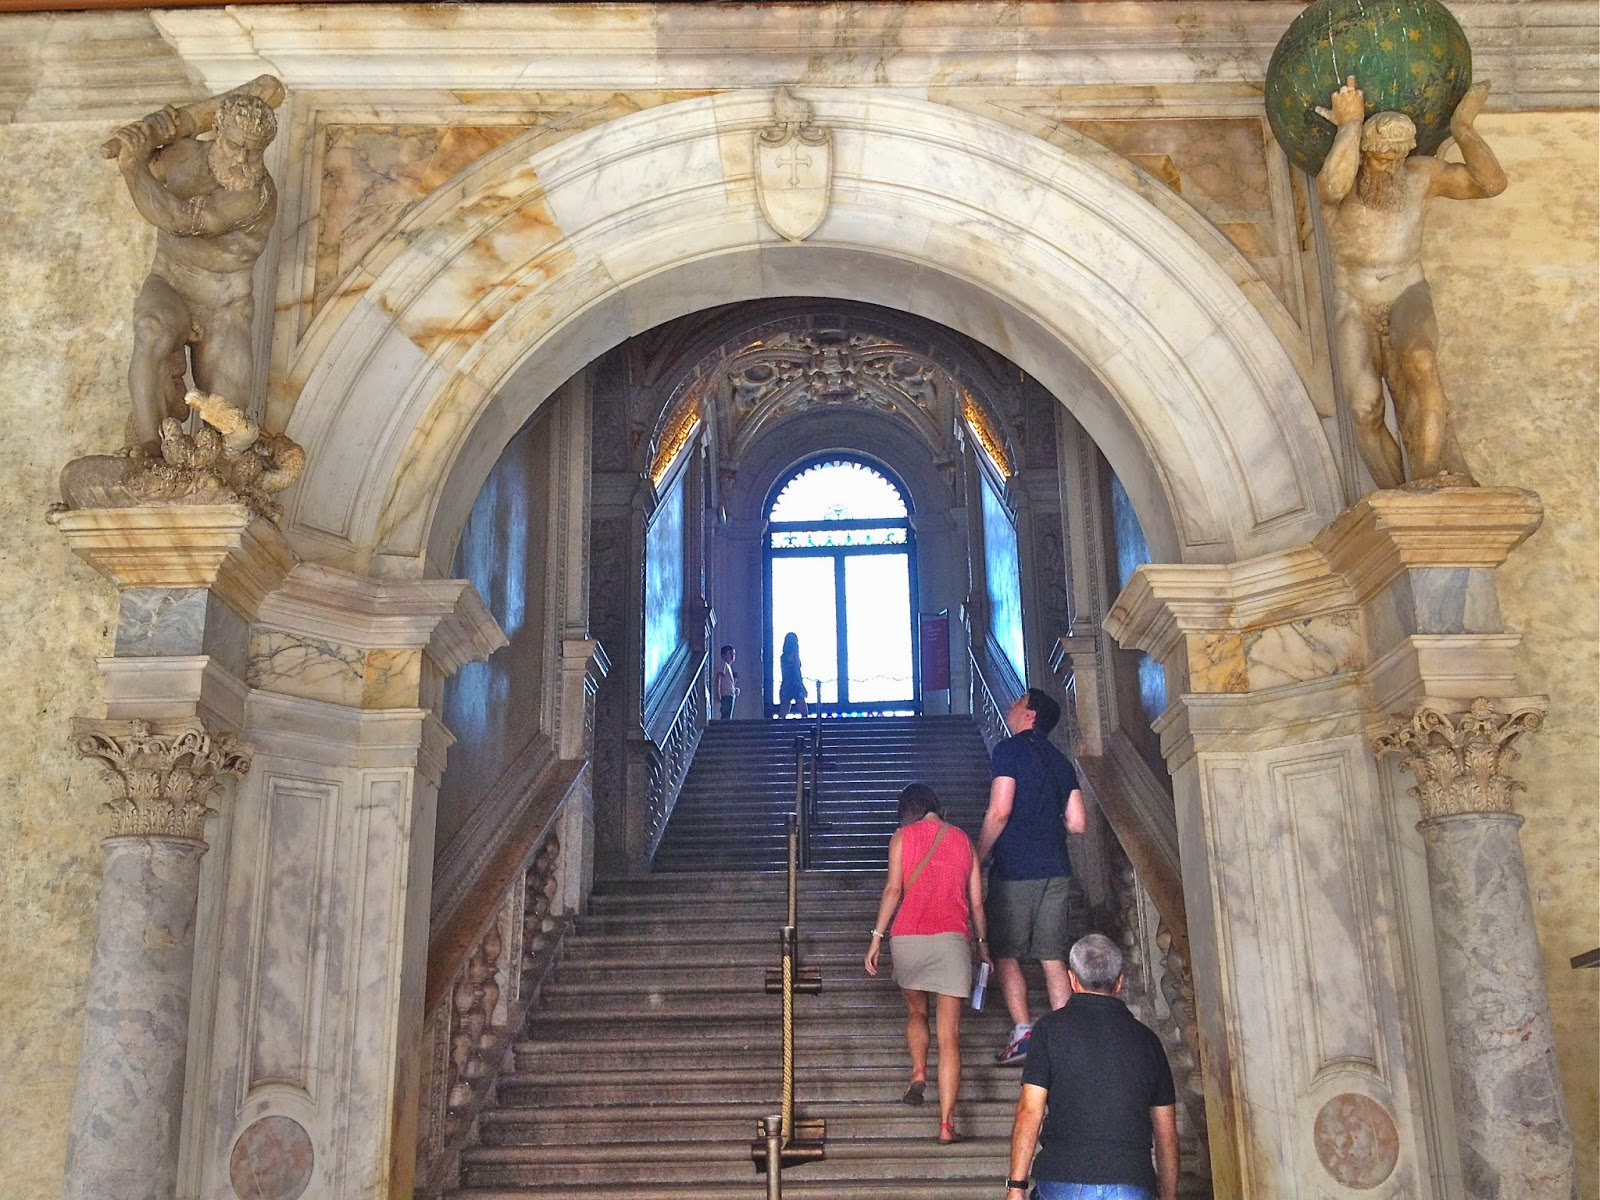 Picture of Palazzo Ducale, Venezia. Entrance to the Doge's apartment.